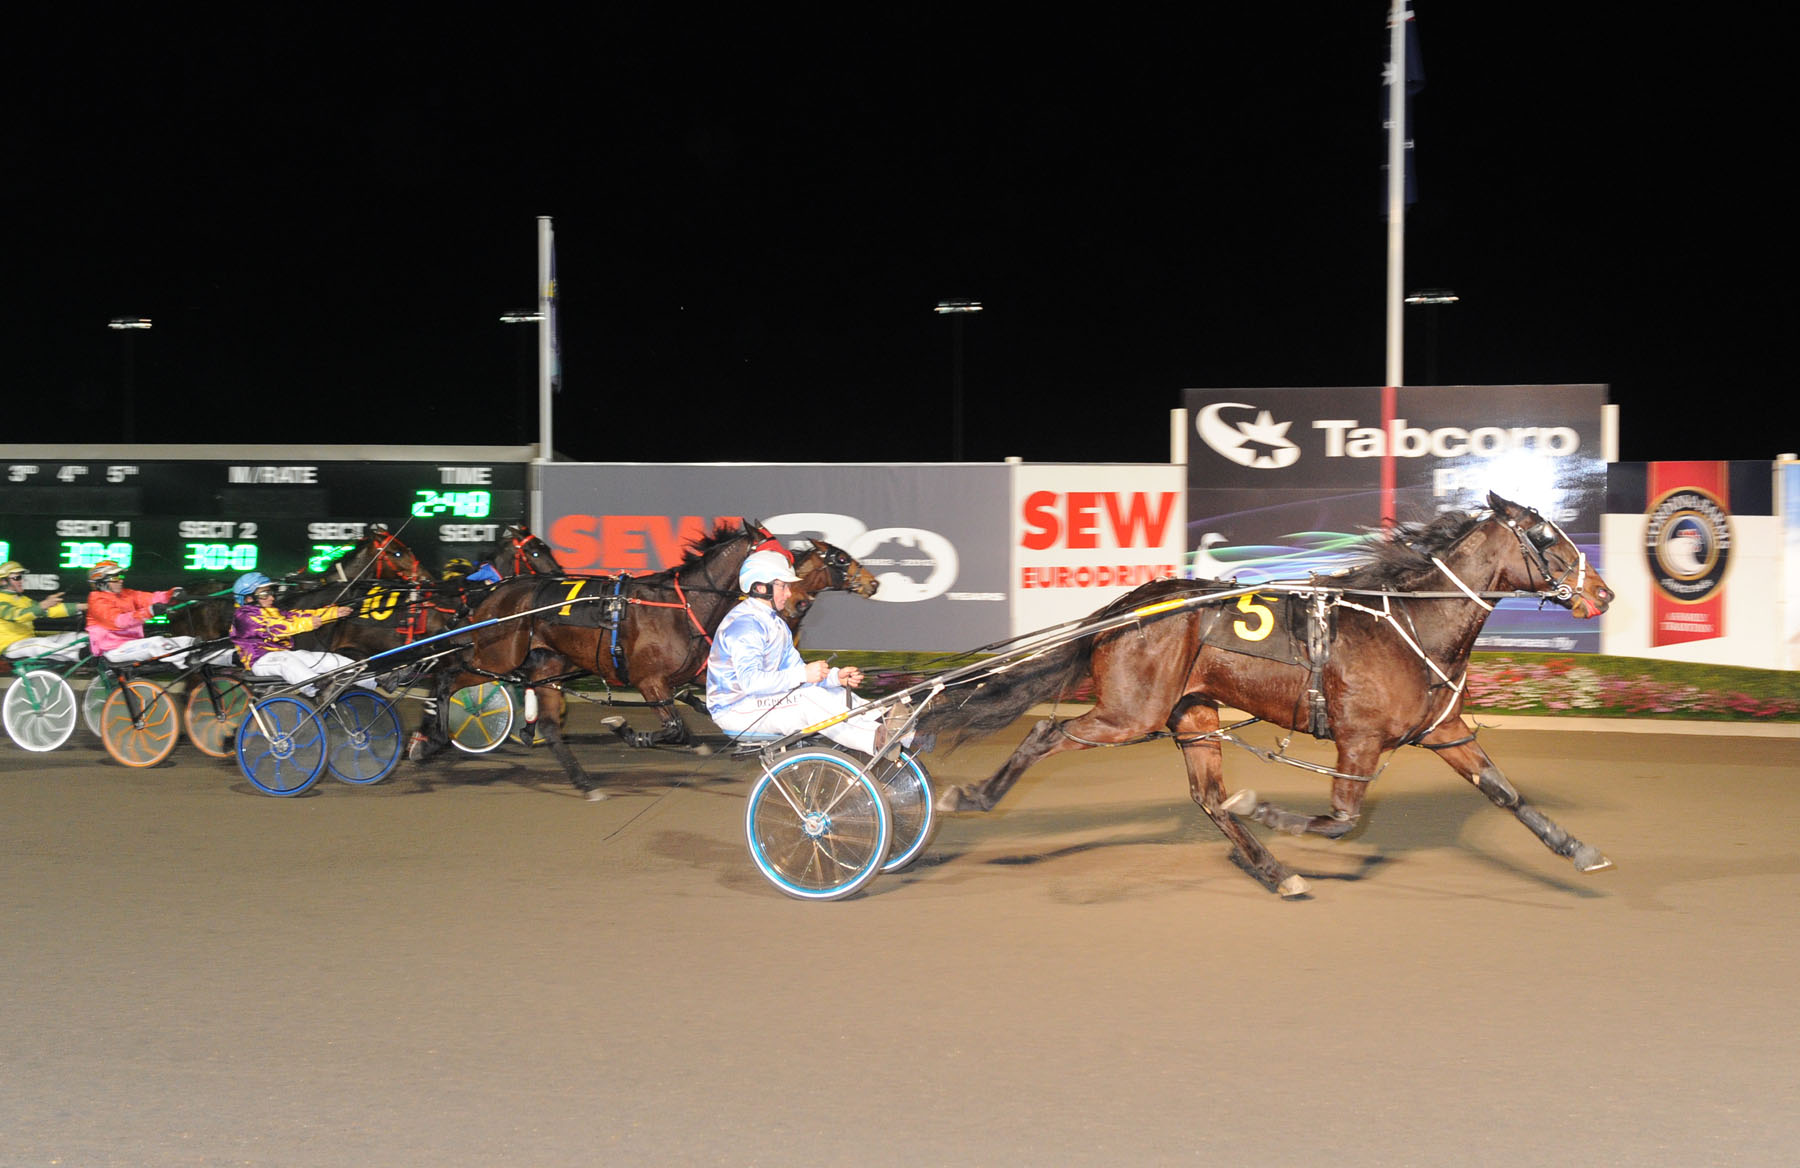 Image courtesy National Trotguide - California Sunset won 9 races for the Picker stable.